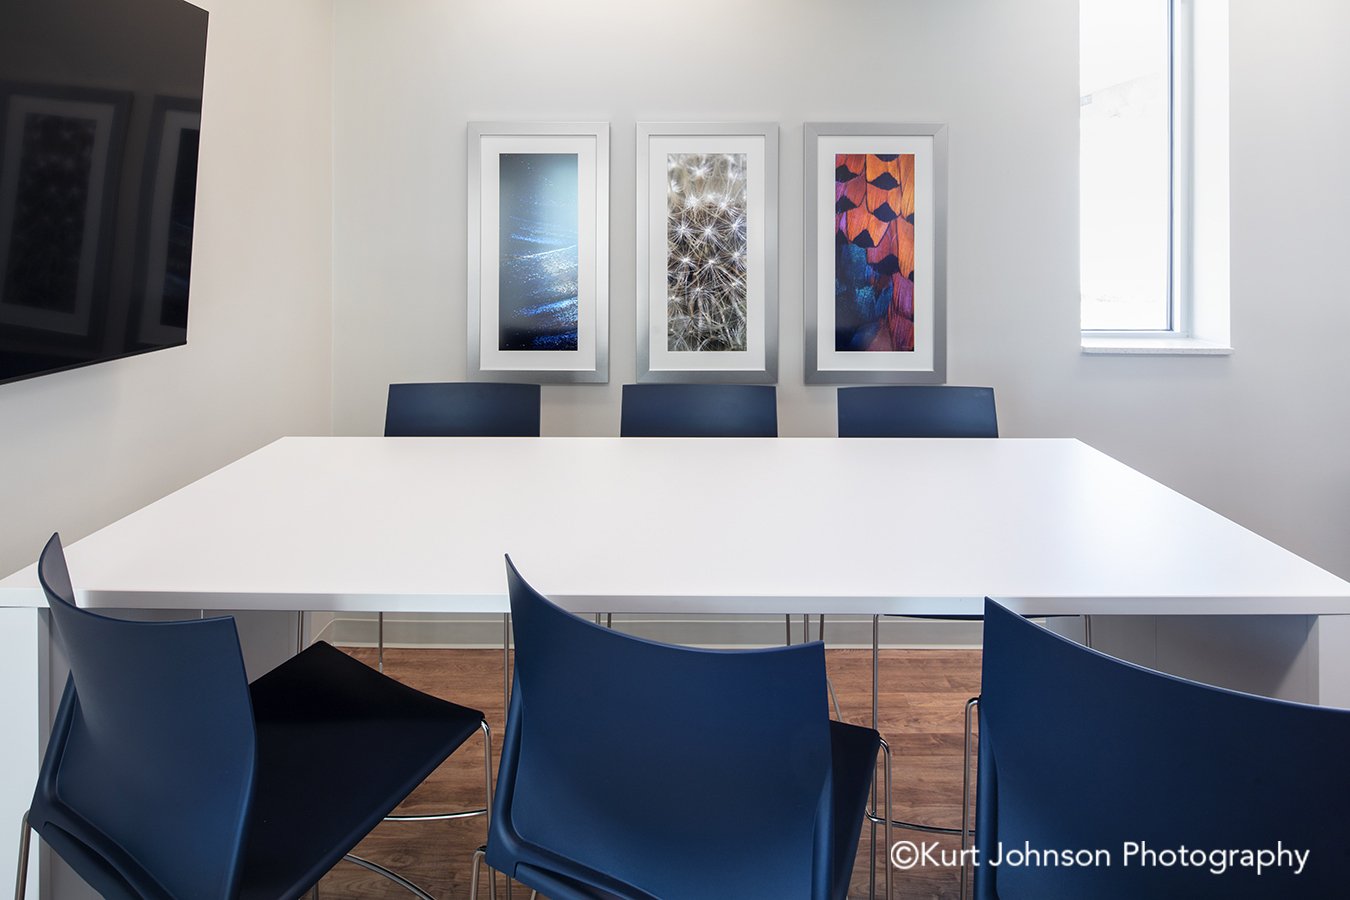 silver frame framed art install installation wall feather texture water staff breakroom room table chairs methodist physicians clinic elkhorn nebraska best care positive distraction patient outcomes